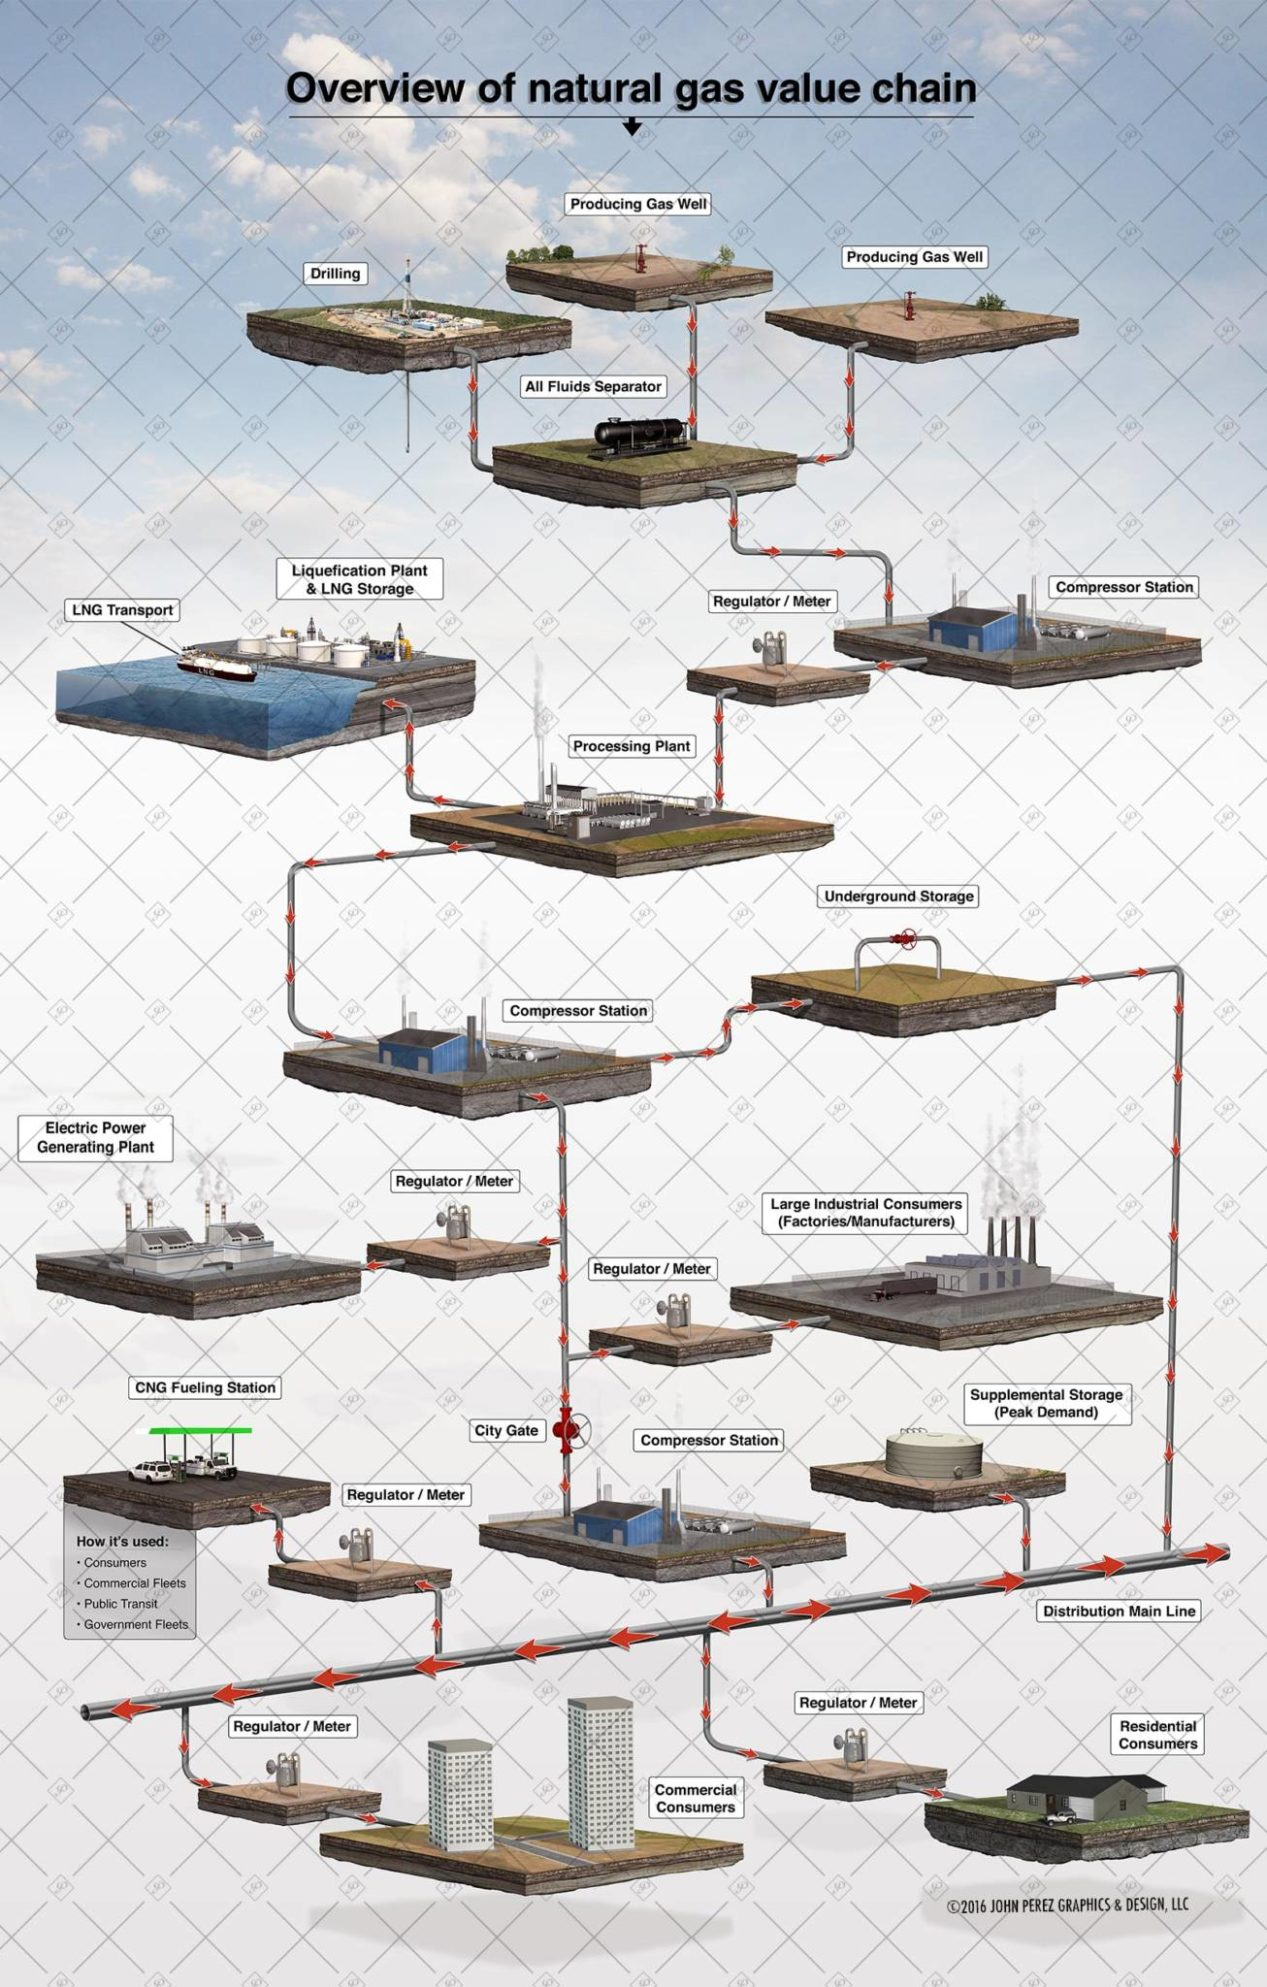 Natural Gas Value Chain Schematic, oil and gas graphics, oil and gas schematics, drilling geology, john perez graphics, geology illustration